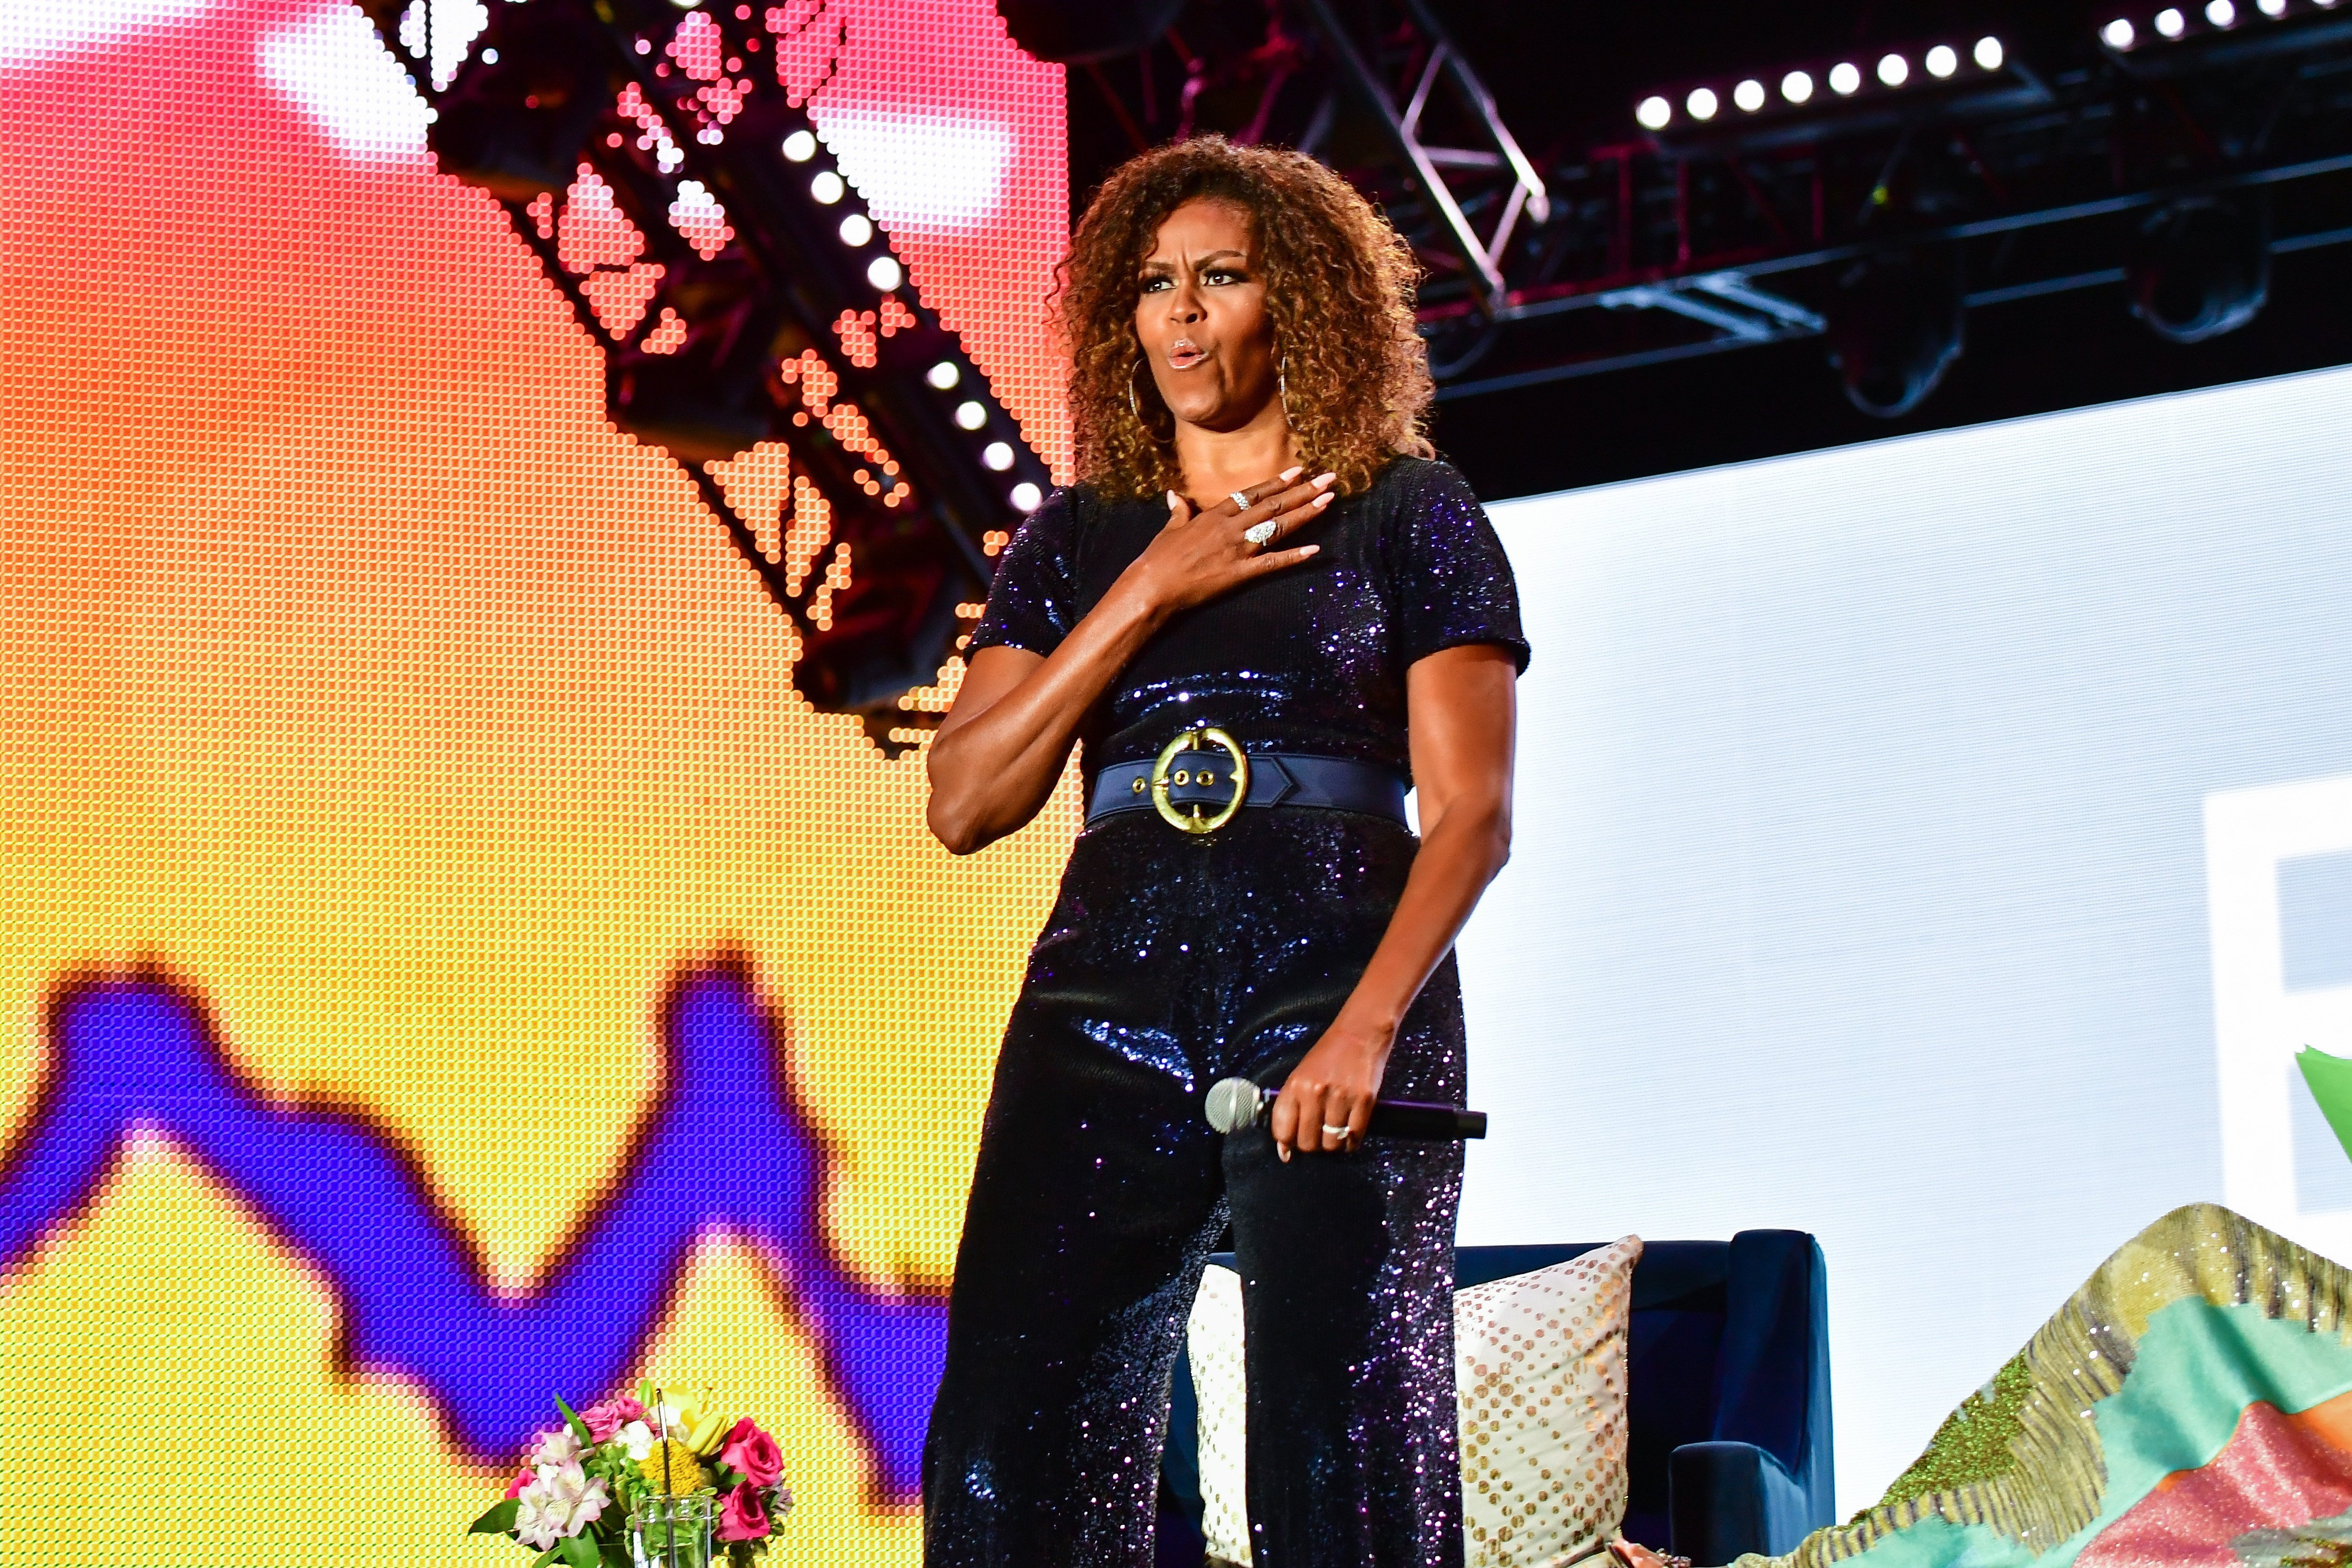 Michelle Obama on stage at the 2019 Essence Festival in Louisiana. | Photo: Getty Images